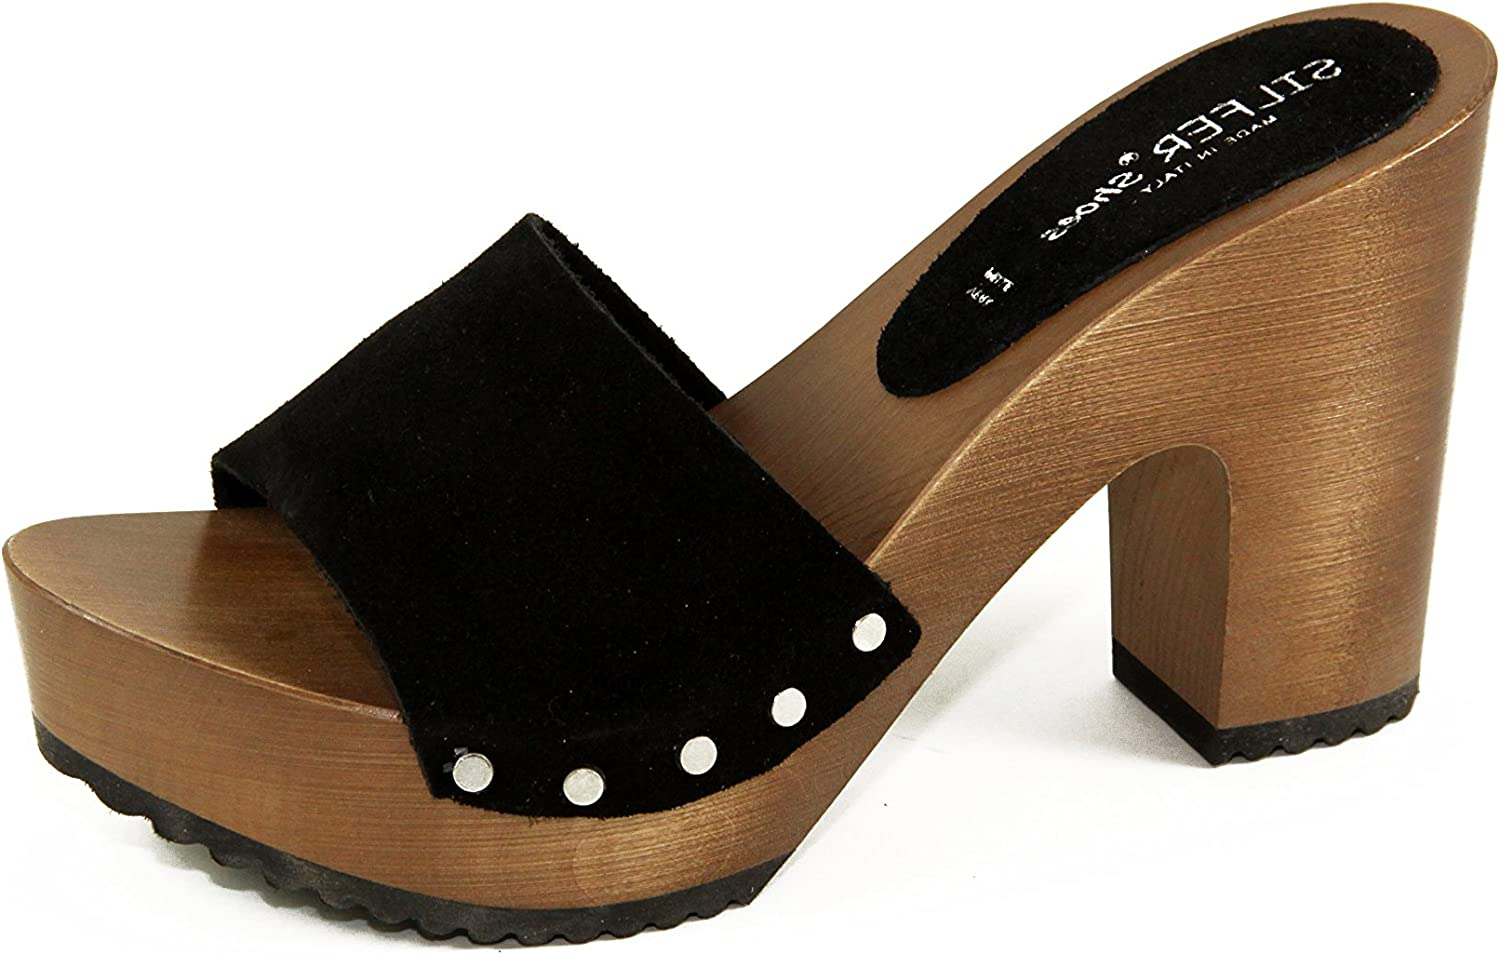 Silfer shoes Women's Clogs- Made in  Made Out of Real Wood and Leather - Blackcolor